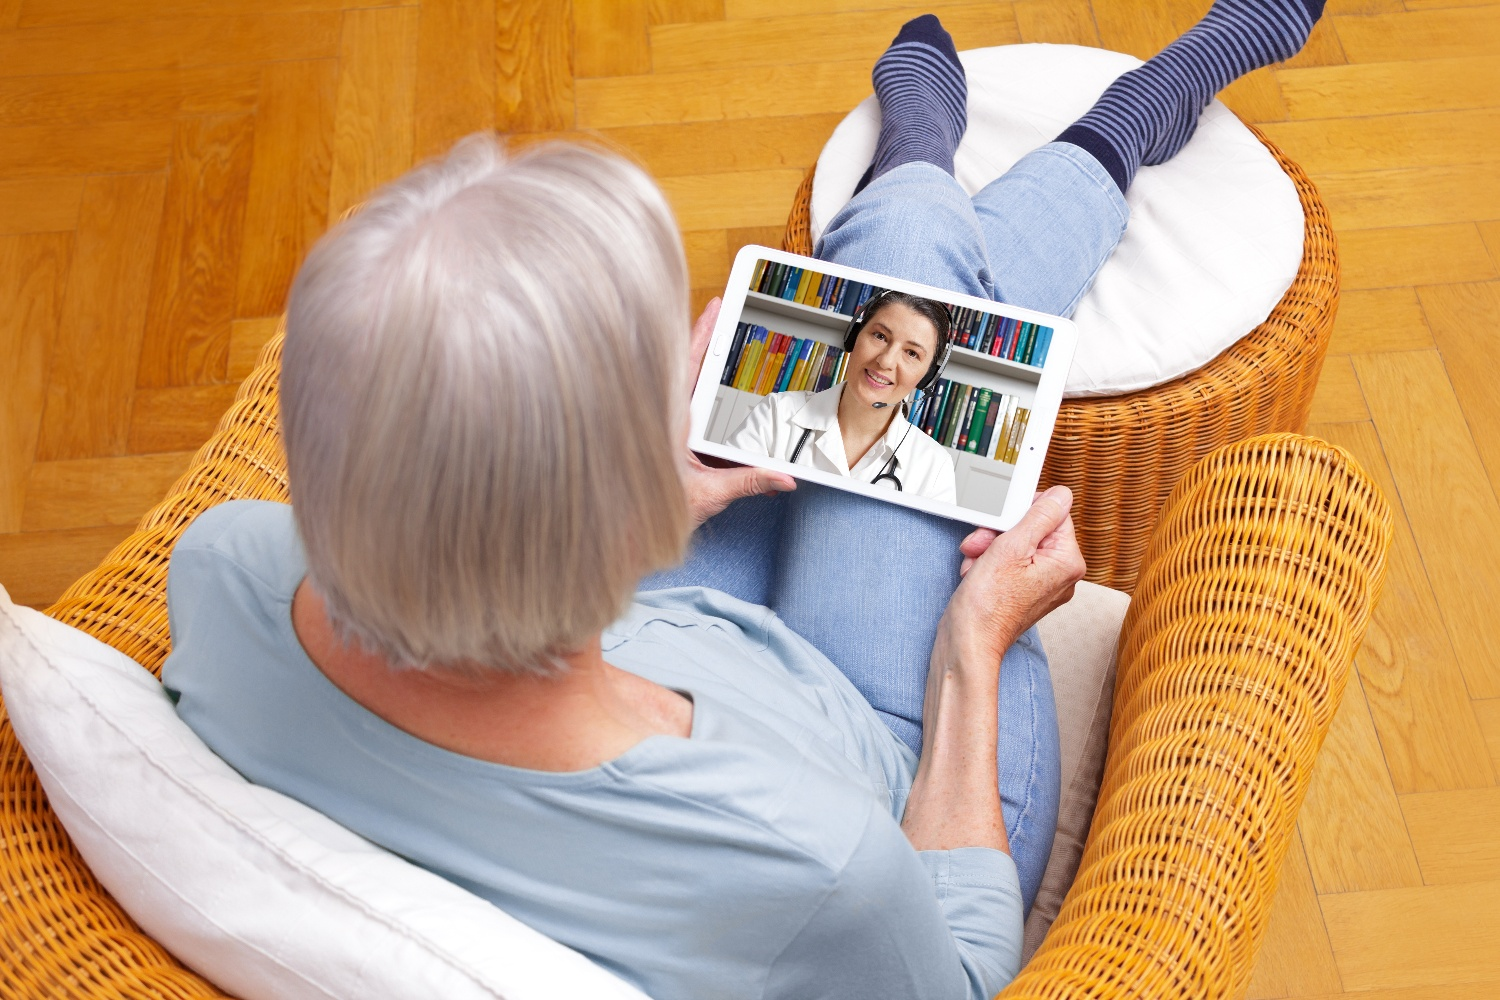 senior woman using telehealth technology